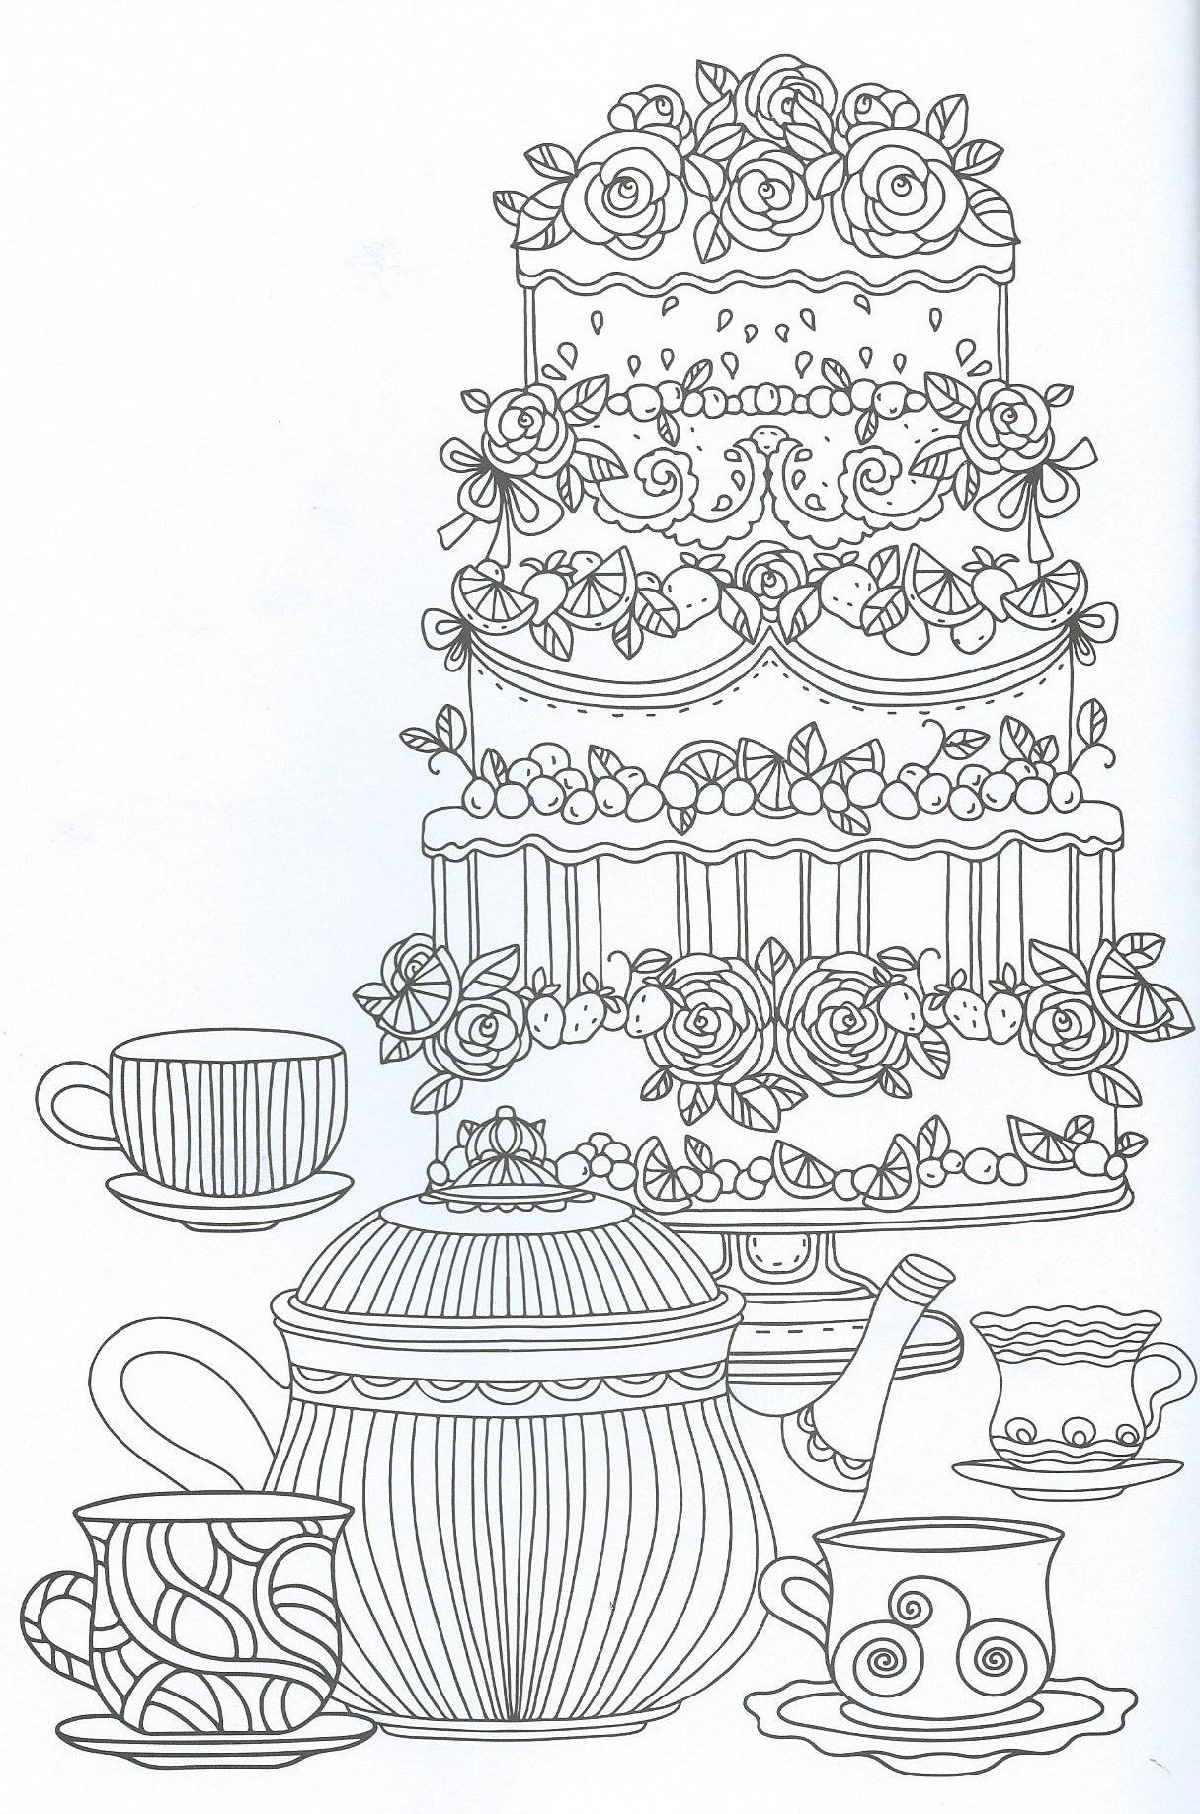 Cake Coloring Pages For Adult